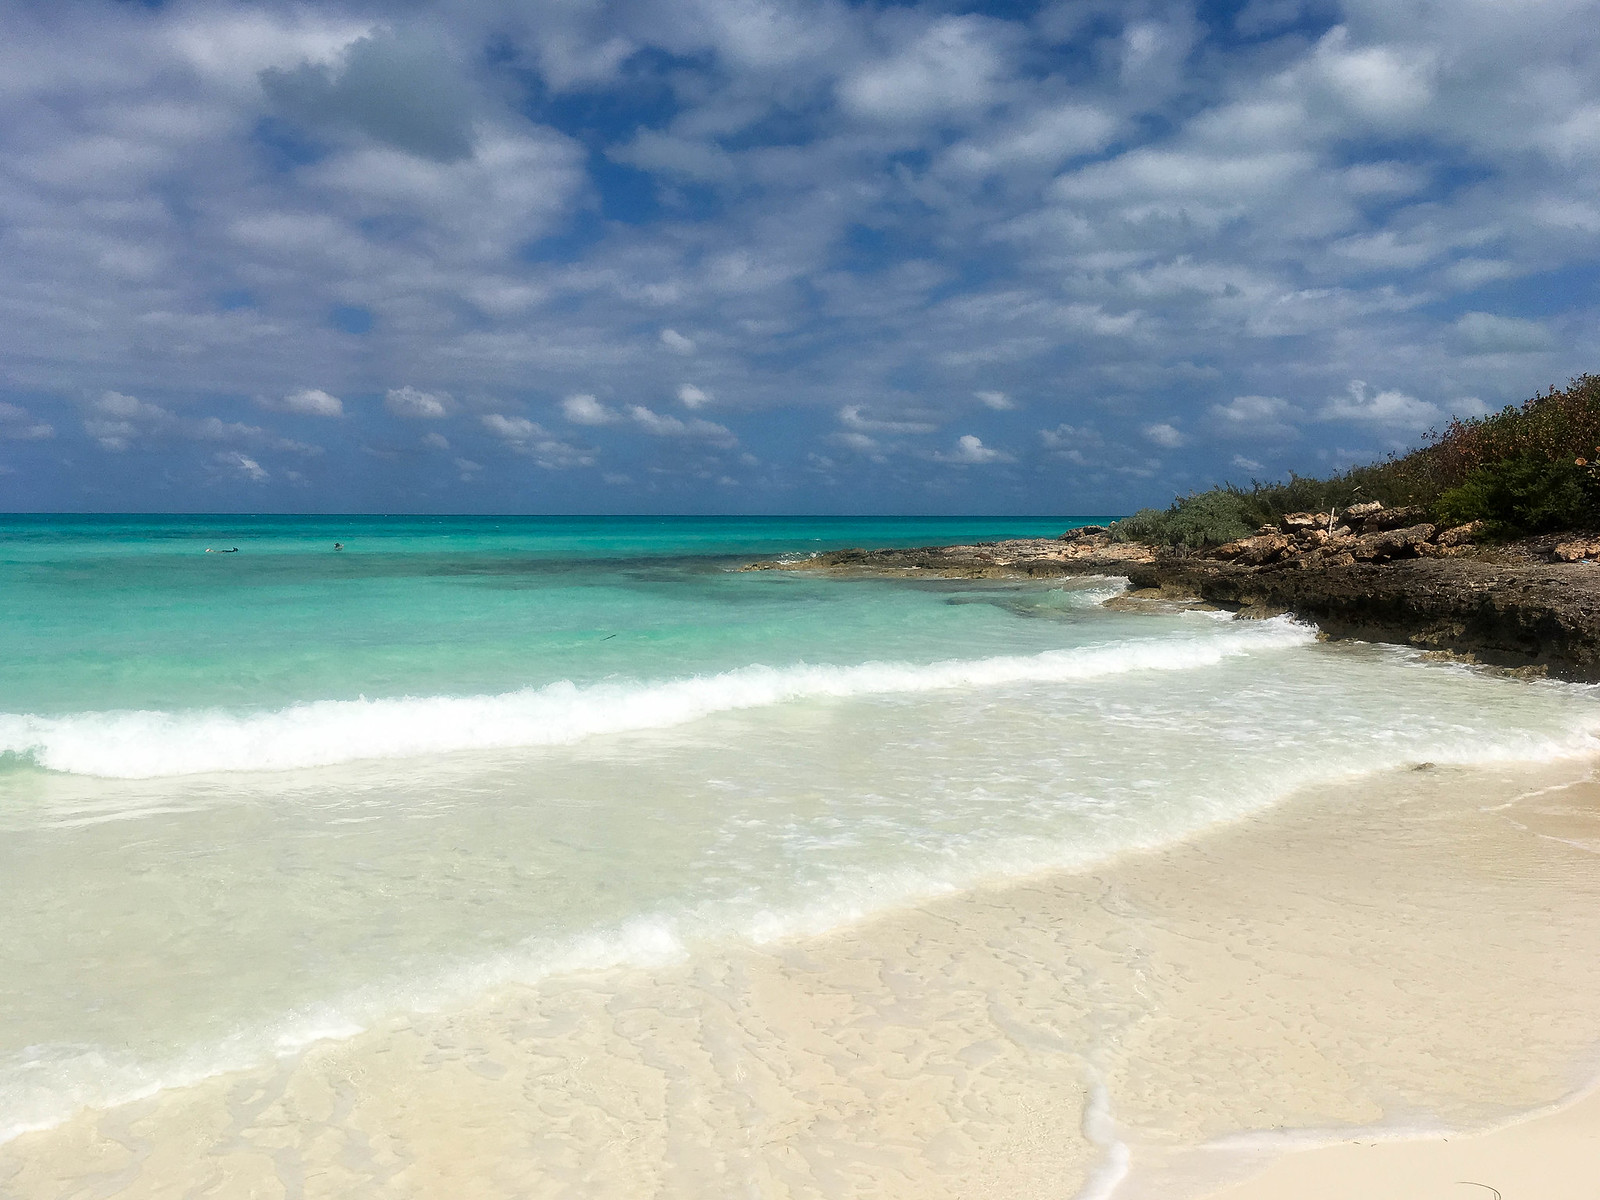 Forum on this topic: How to Plan a Beach Vacation to , how-to-plan-a-beach-vacation-to/